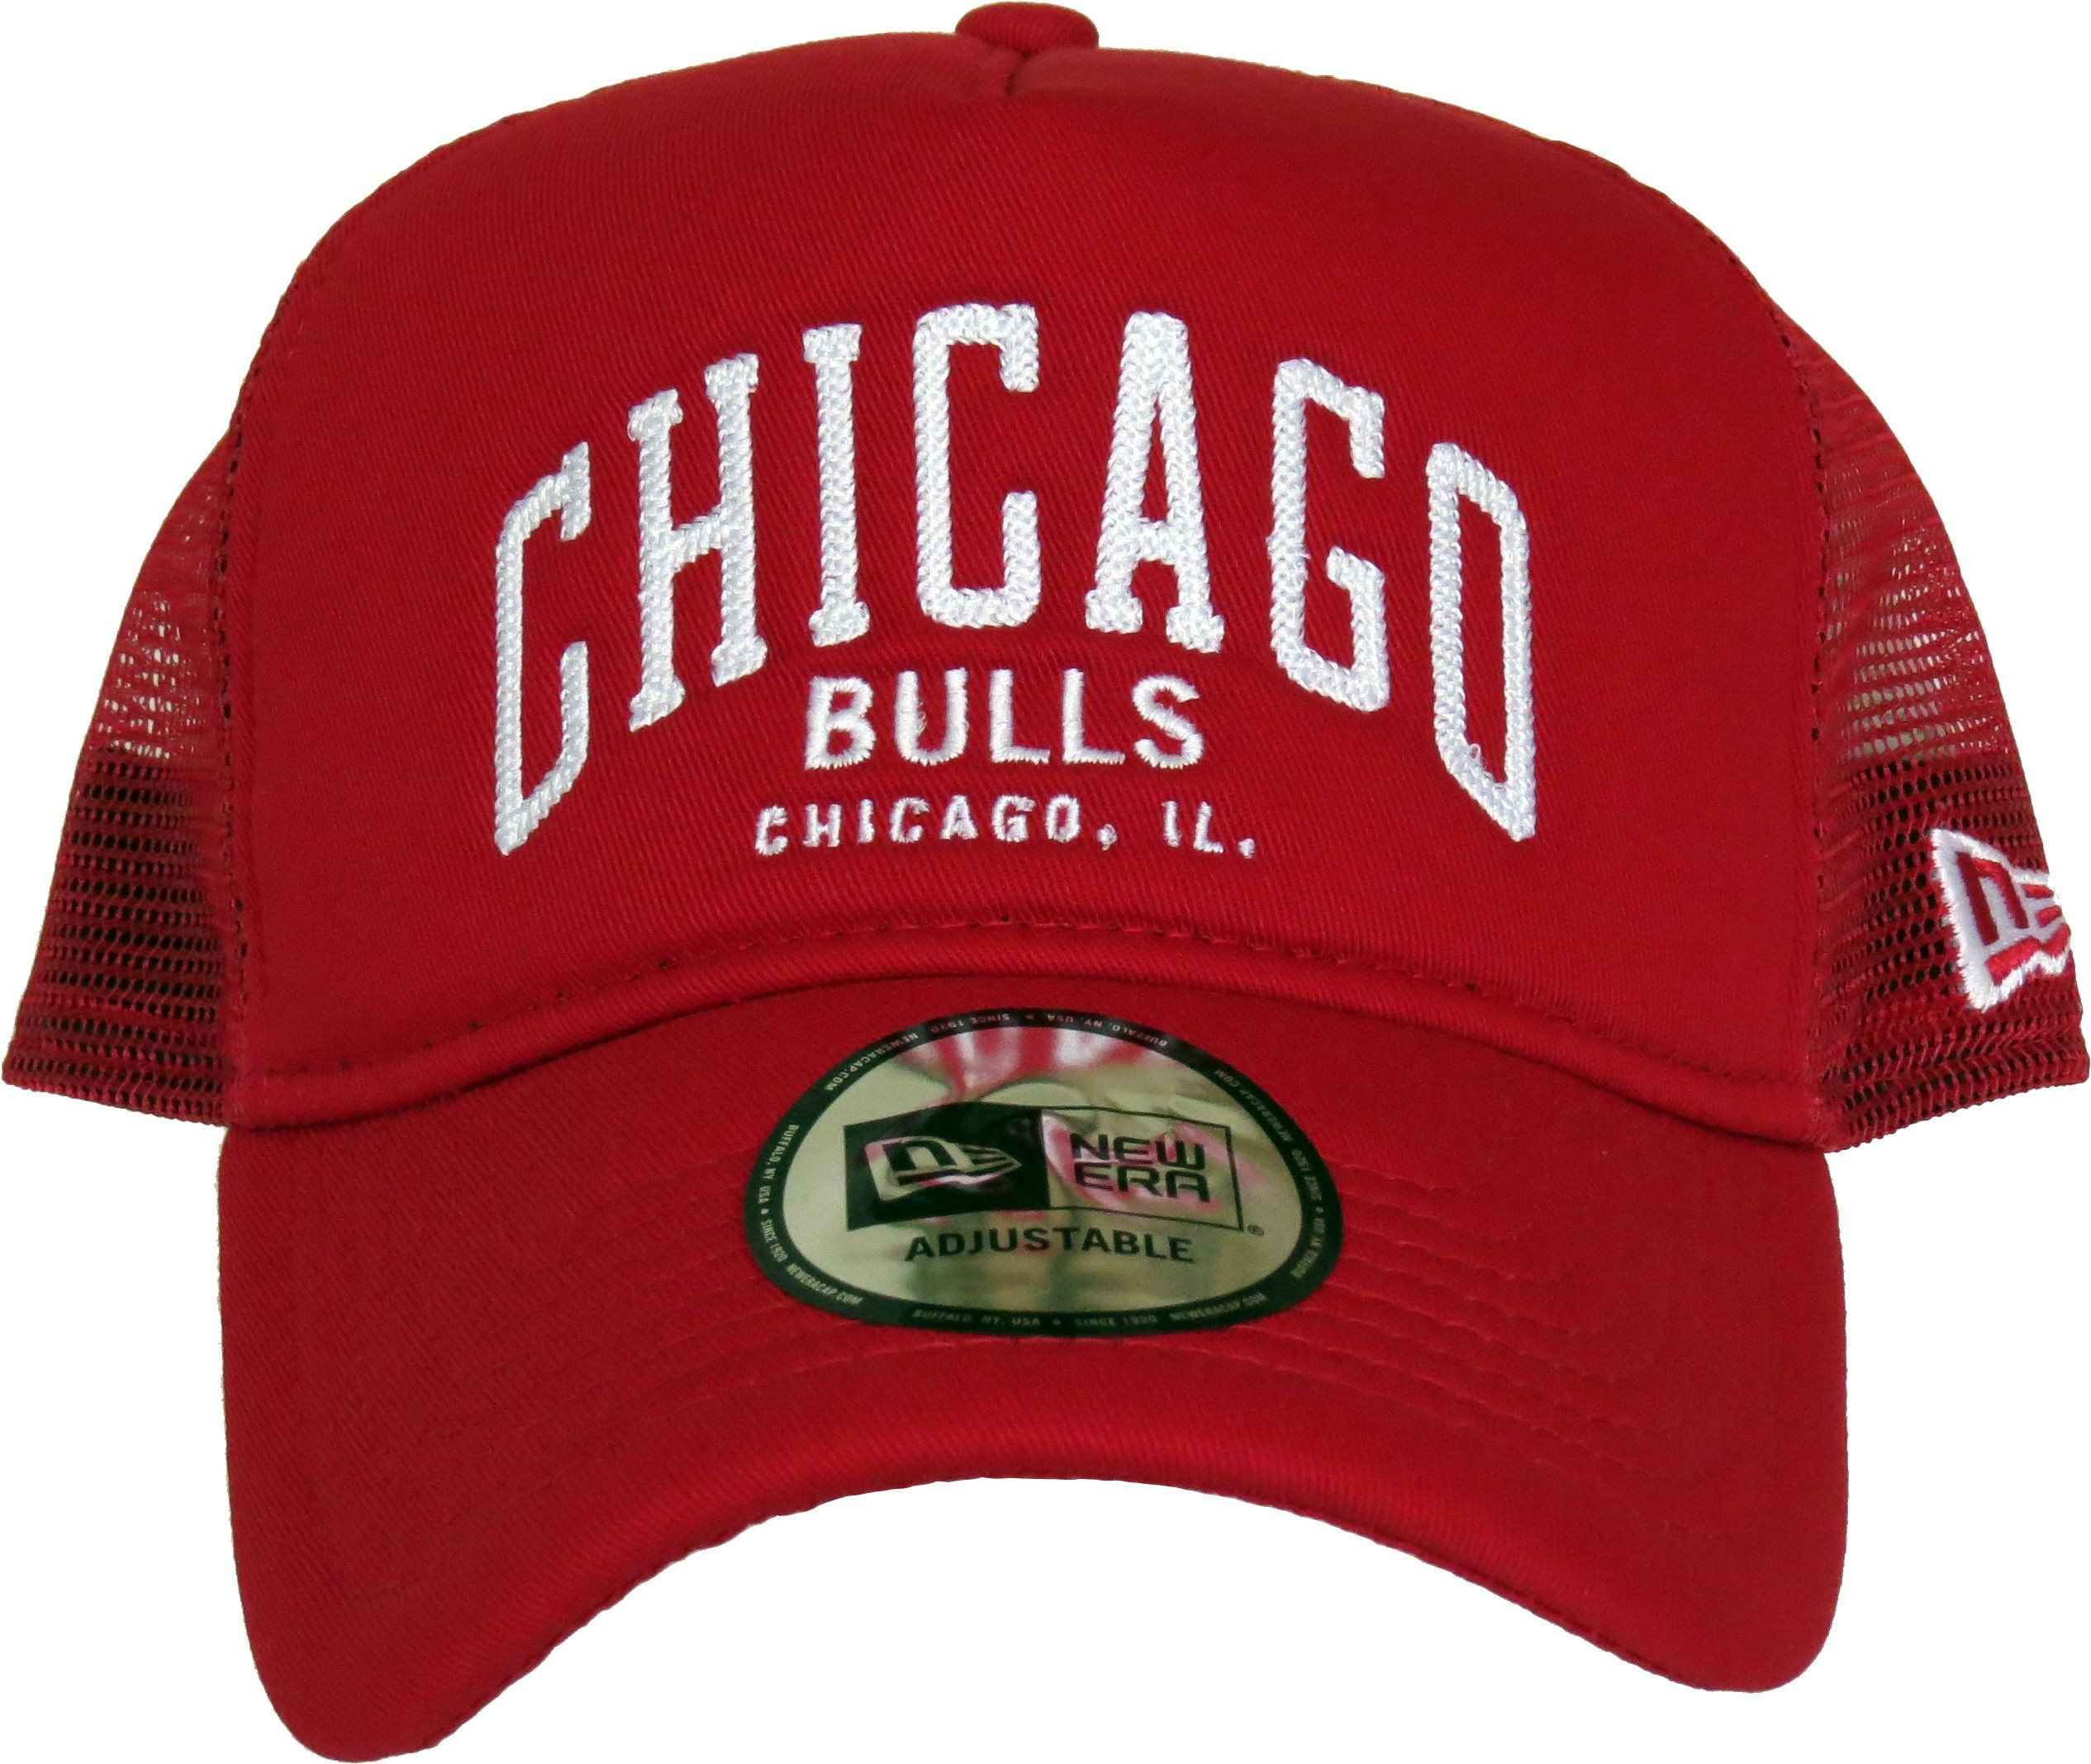 29eab4df9e3 Chicago Bulls New Era Chainstitch Trucker Cap. Red